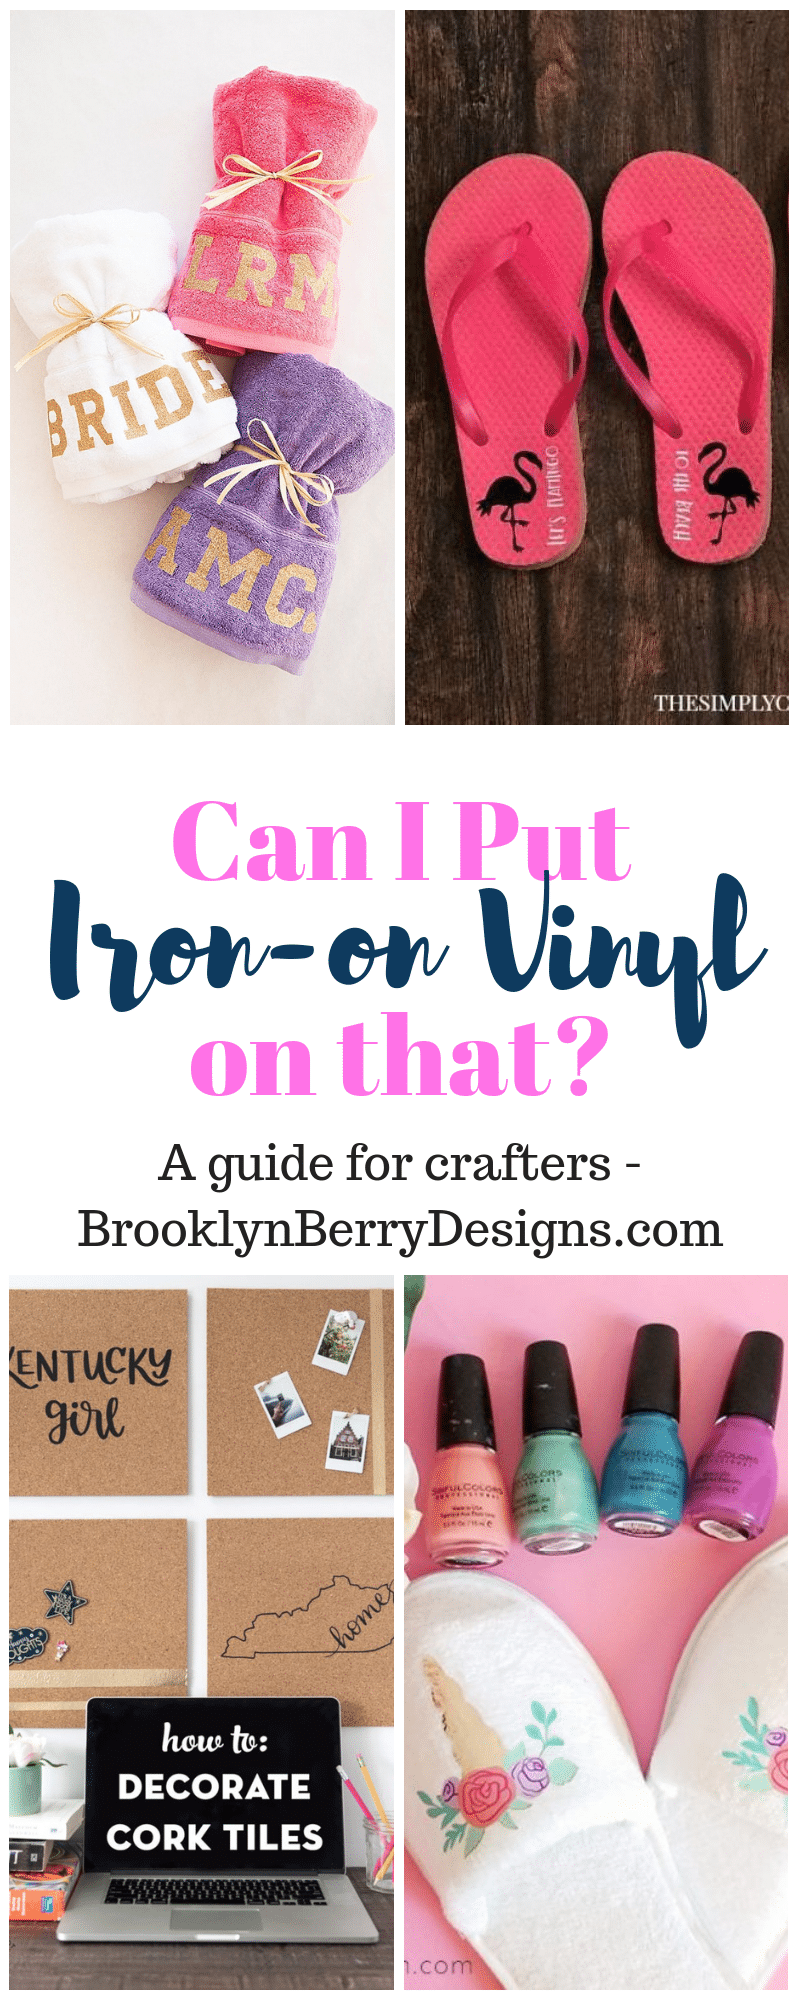 Can I put iron on vinyl on that? I find myself asking that all the time, so here is the list of all the unusual and fun items you can decorate with your Cricut and the EasyPress! via @brookeberry